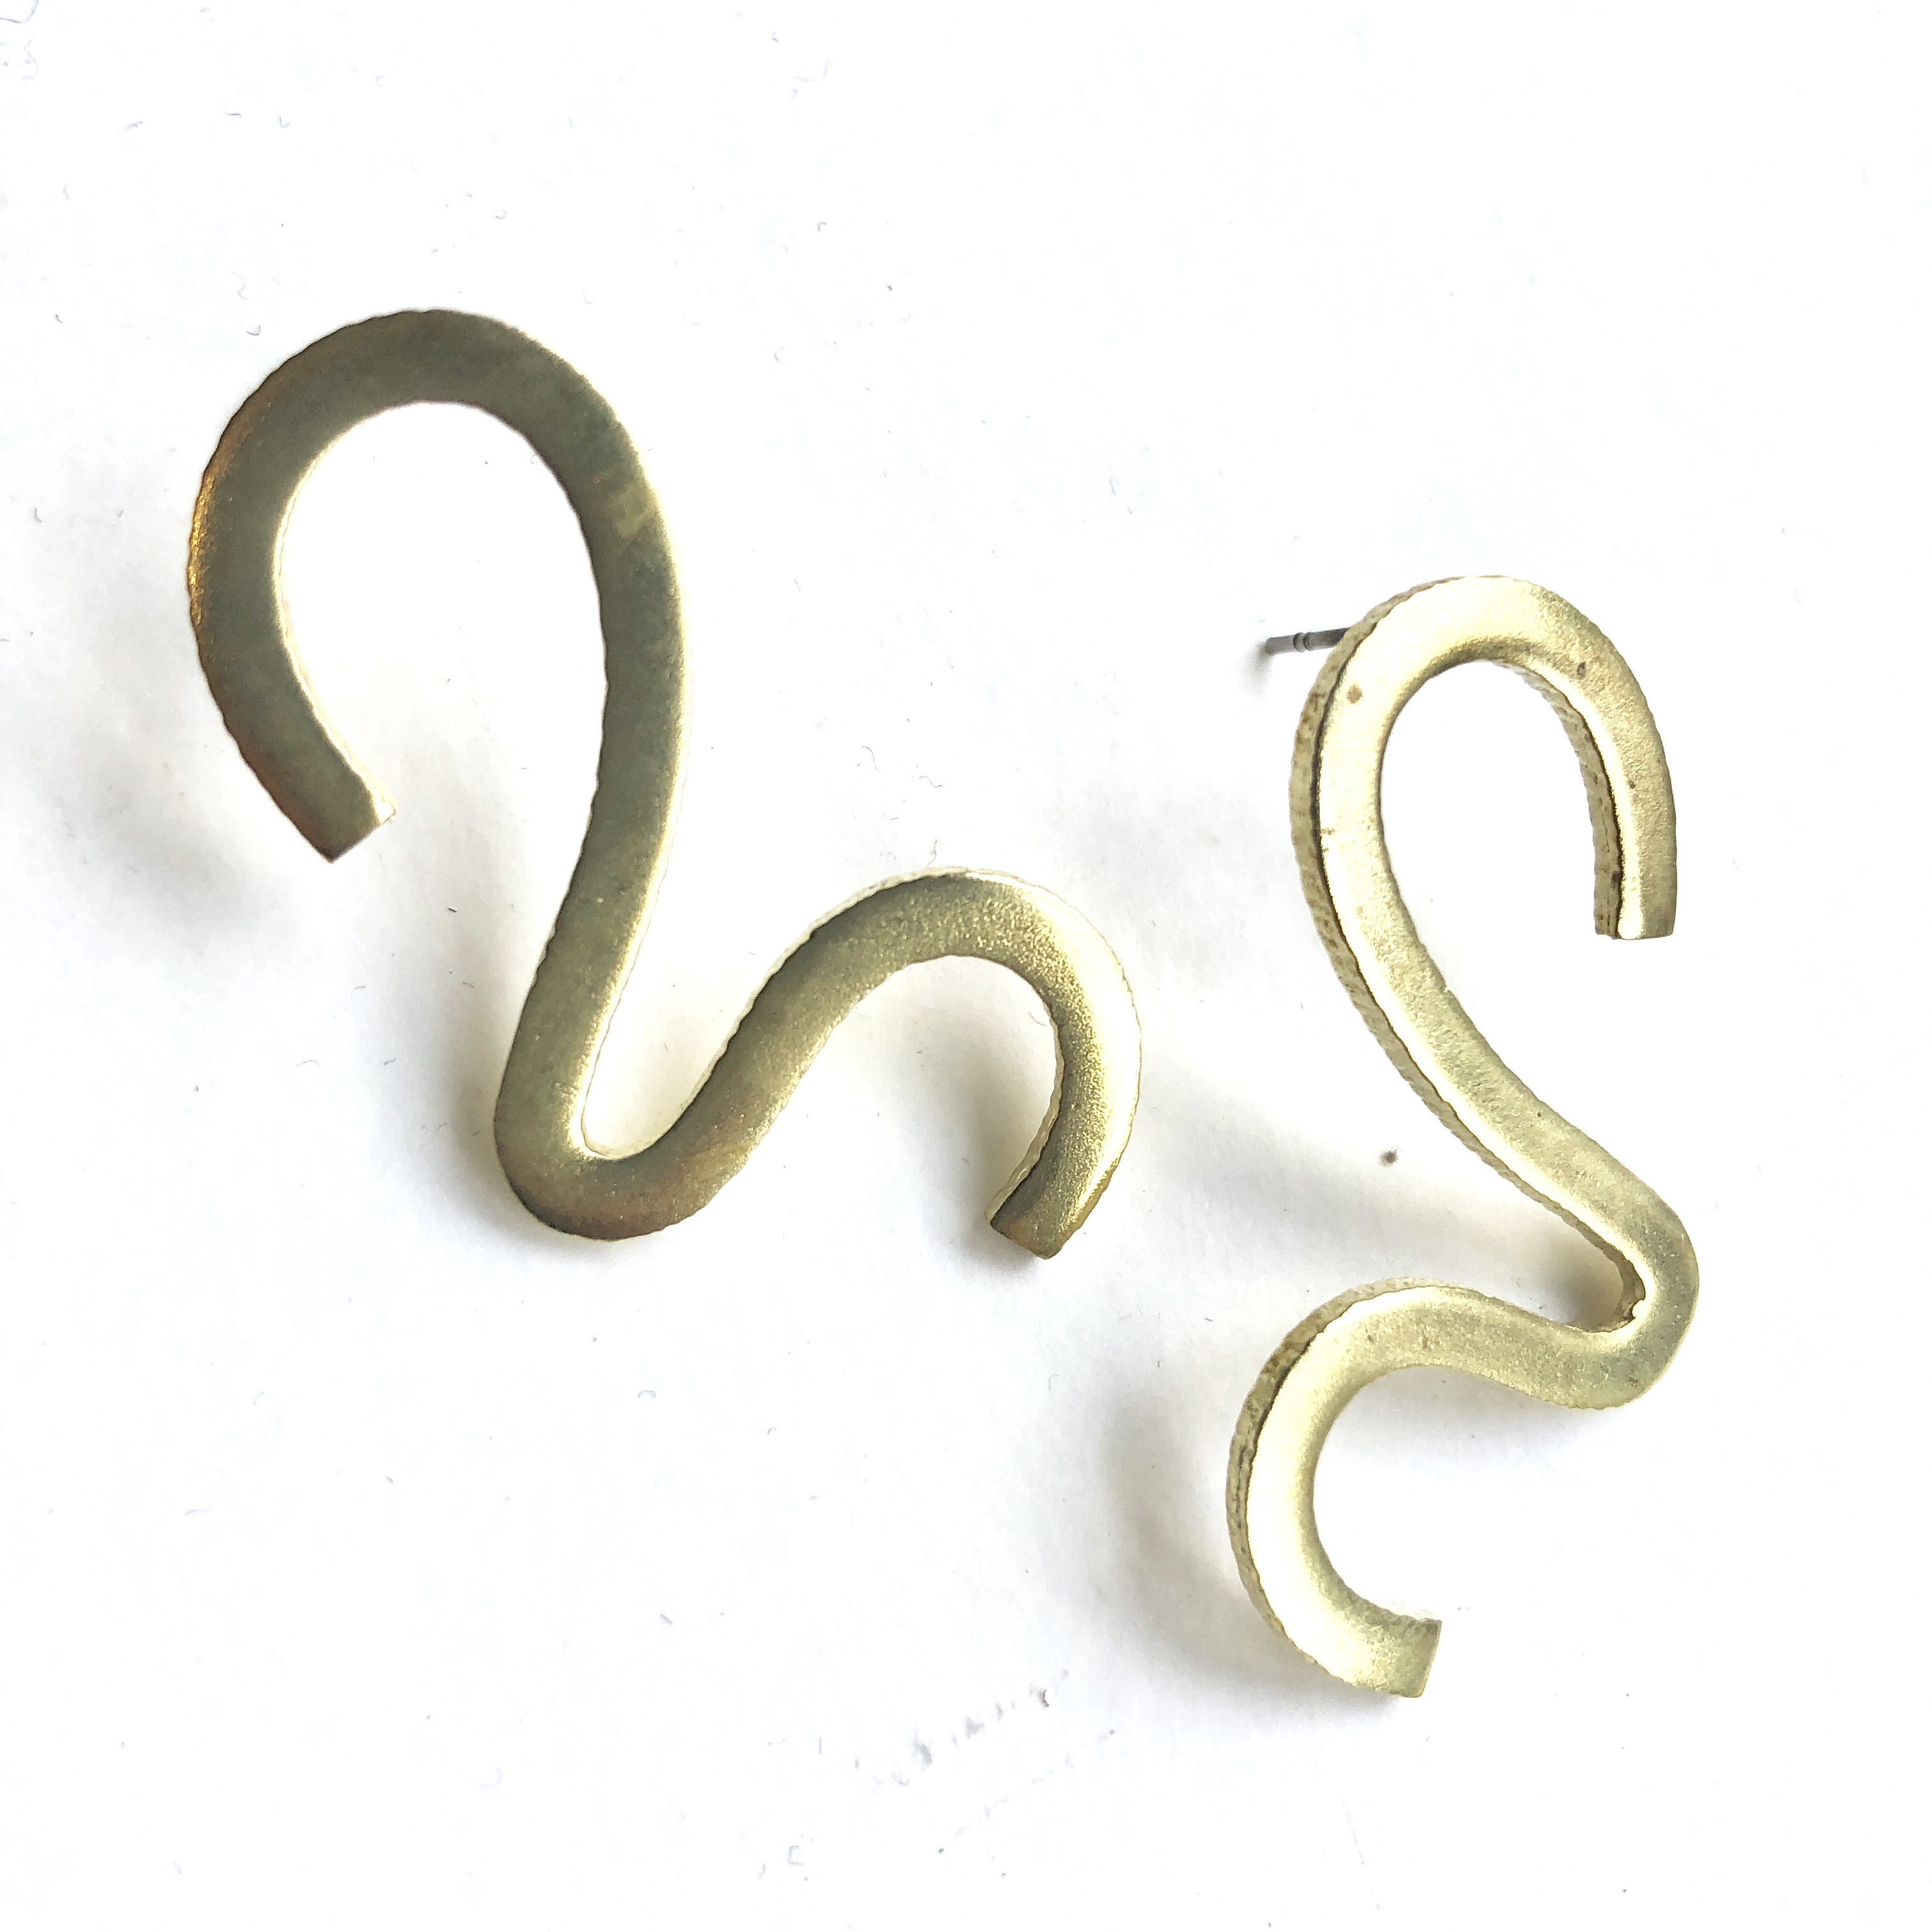 S shape pierced earrings B-003